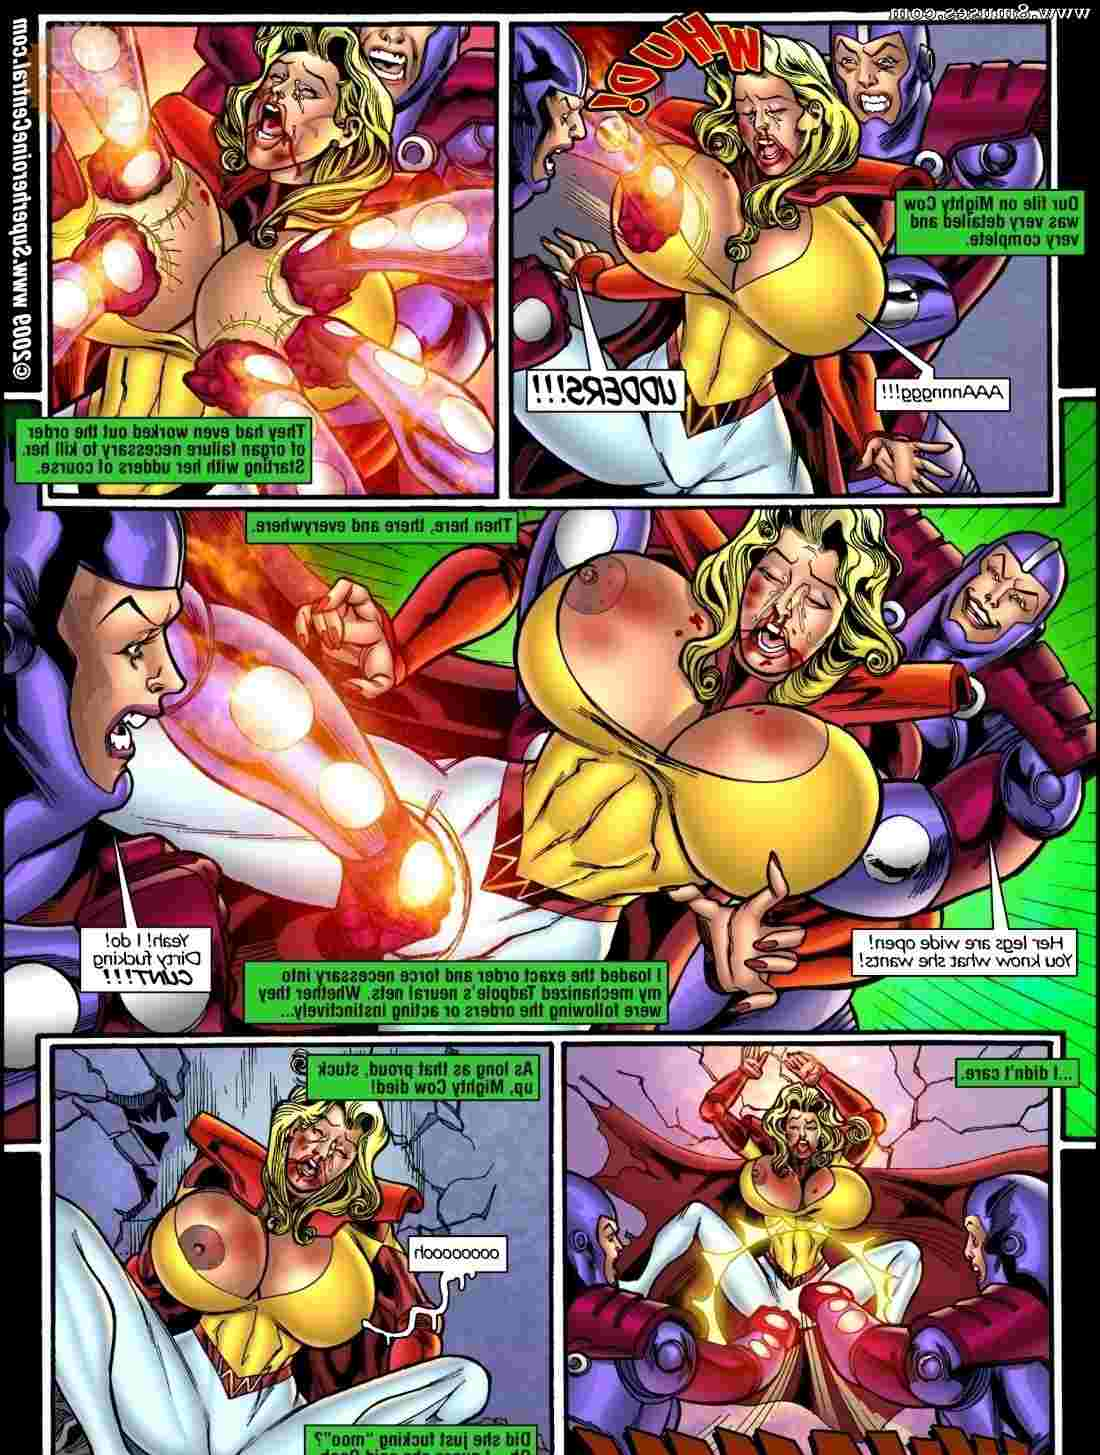 SuperHeroineComixxx/Mighty-cow Mighty_cow__8muses_-_Sex_and_Porn_Comics_47.jpg